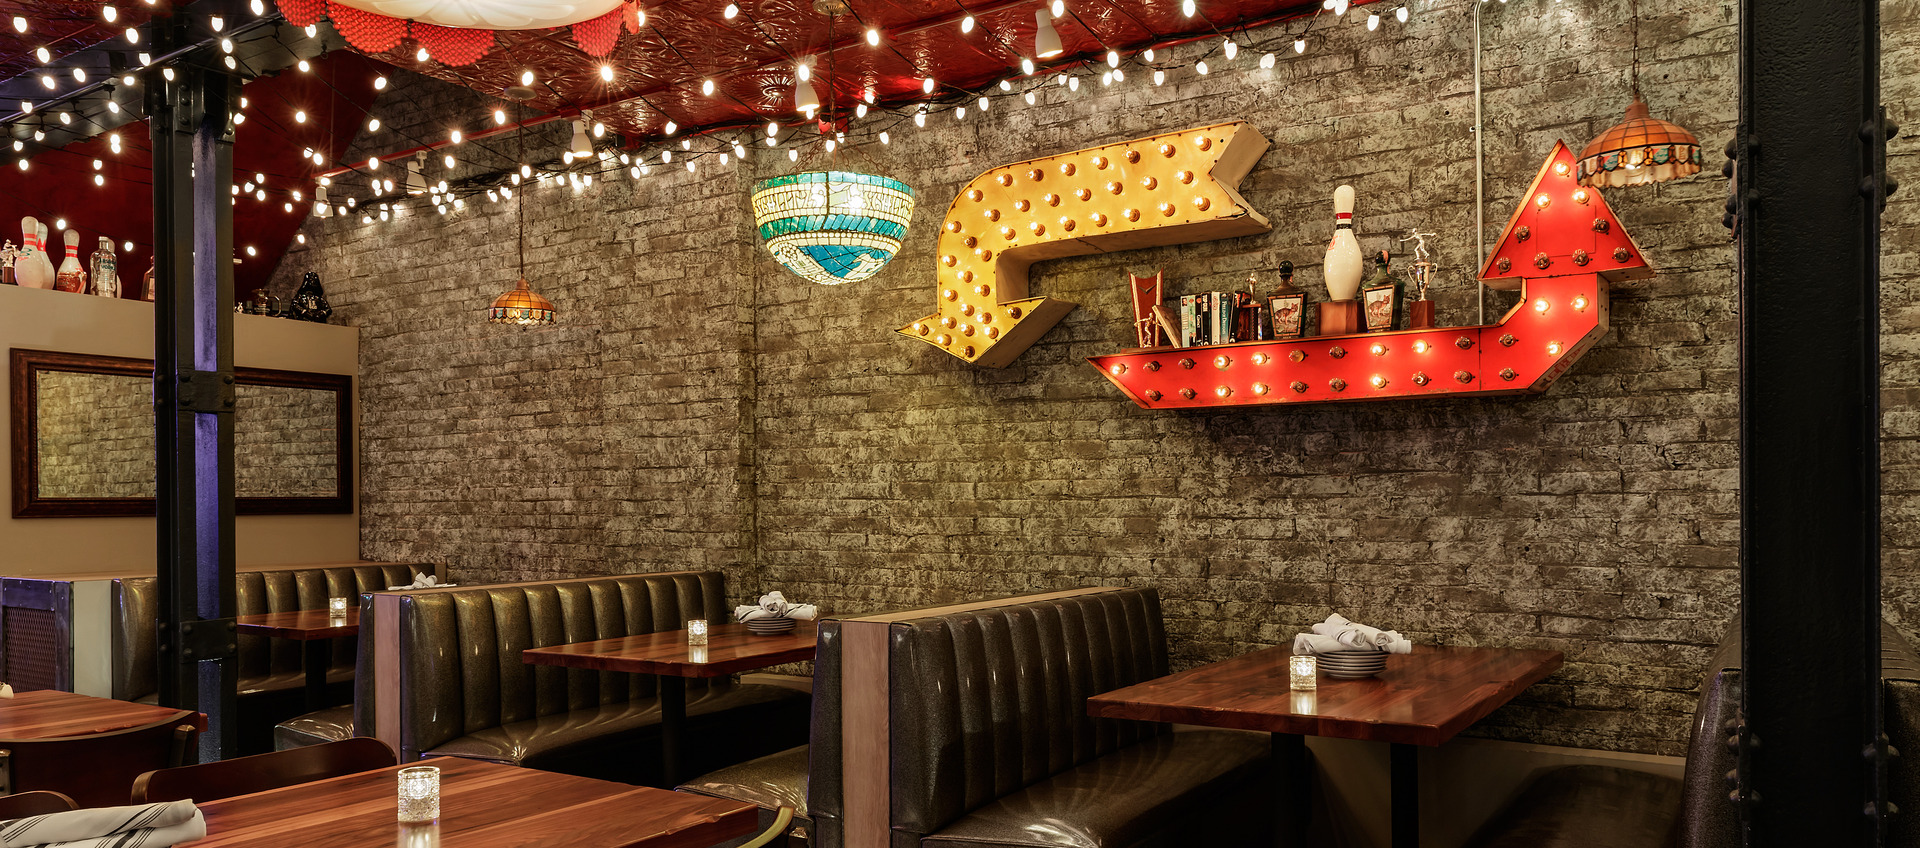 The Bandit, an eclectic restaurant in Chicago showcases the beautiful custom booth design by Contract Industries.